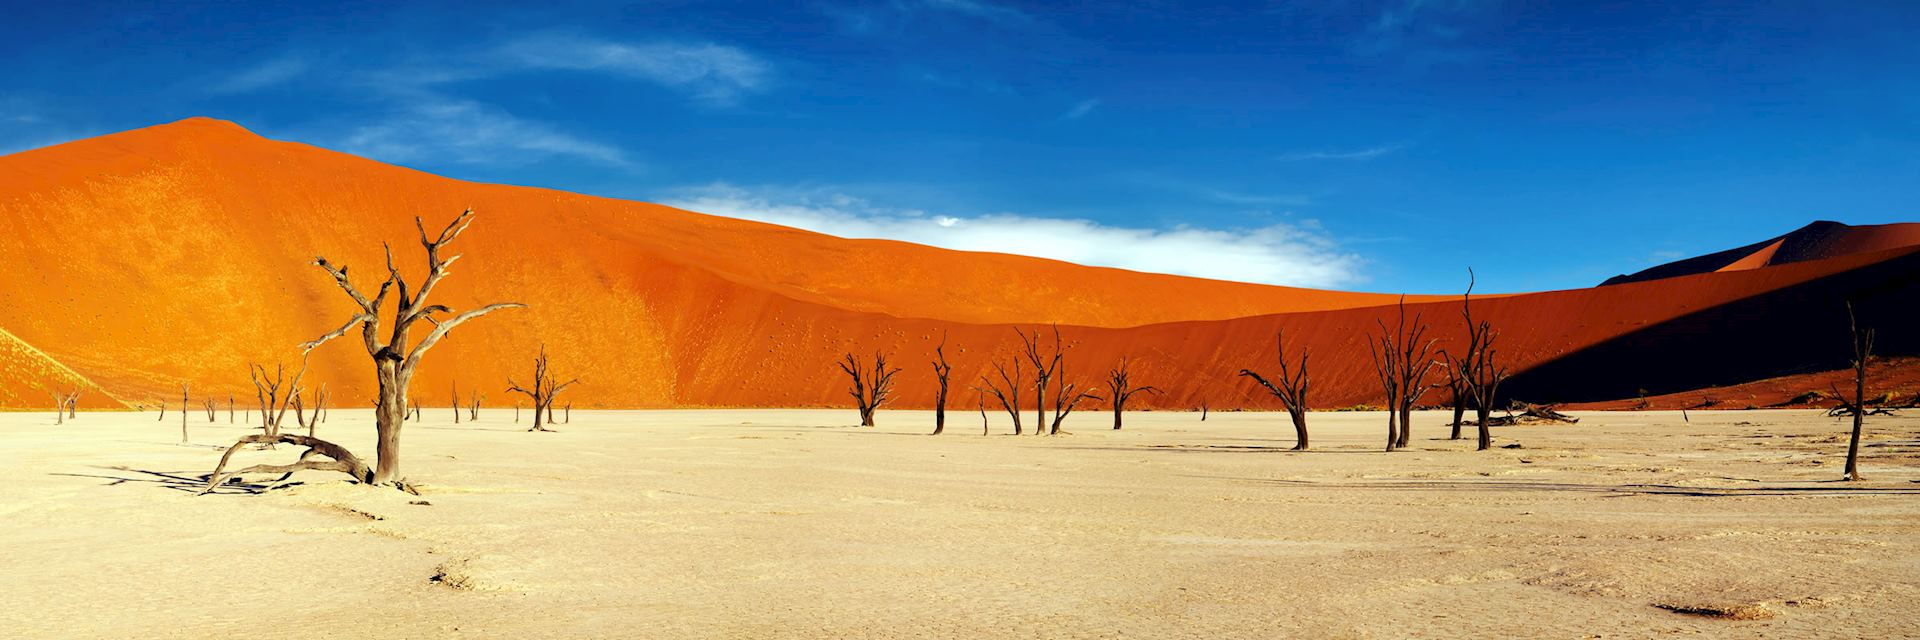 Sand dunes at Sossusvlei, Namib-Naukluft National Park